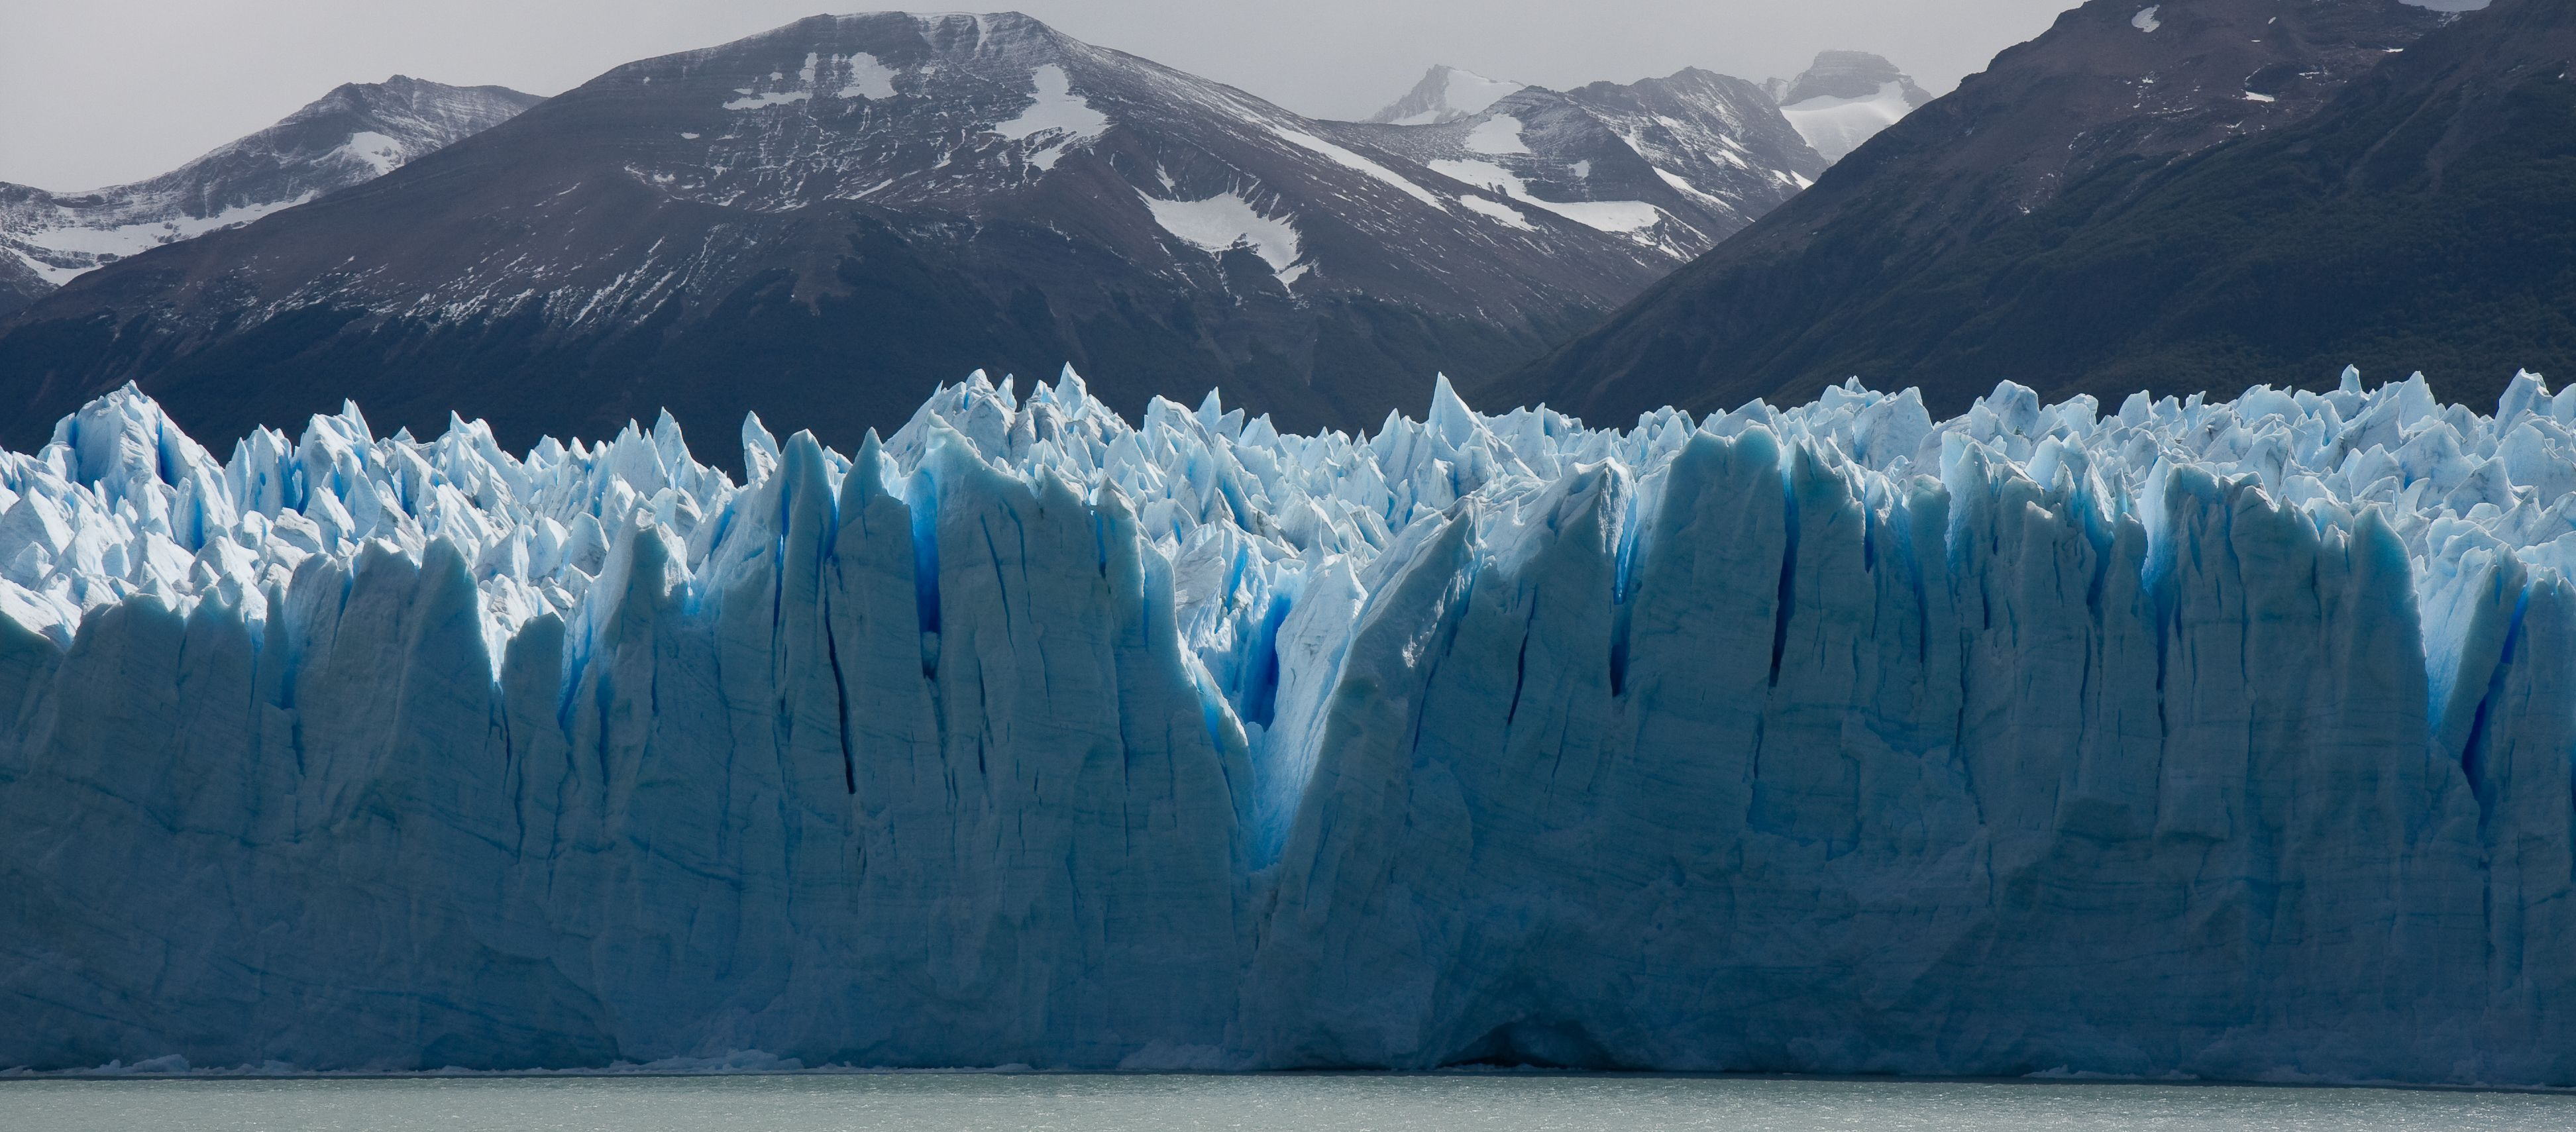 Gaze in Awe at the Creeping Goliath, Glaciar Perito Moreno